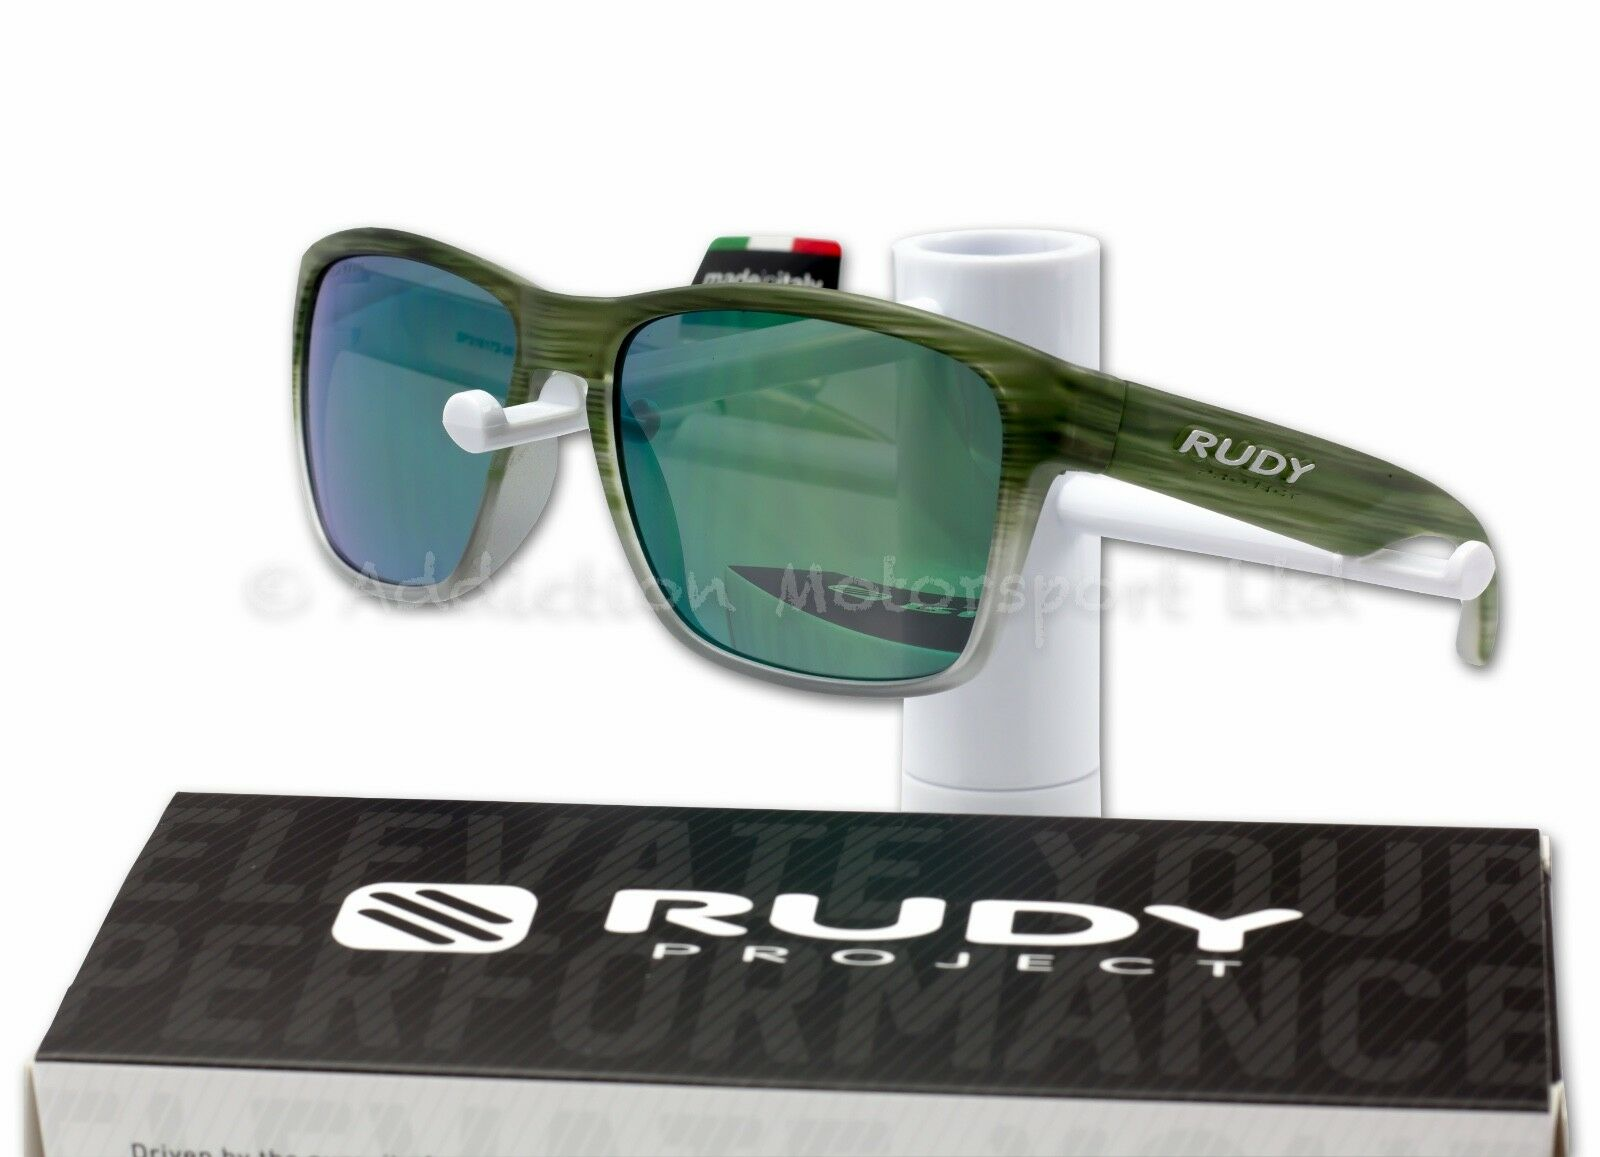 Rudy Project Lifestyle Sunglasses